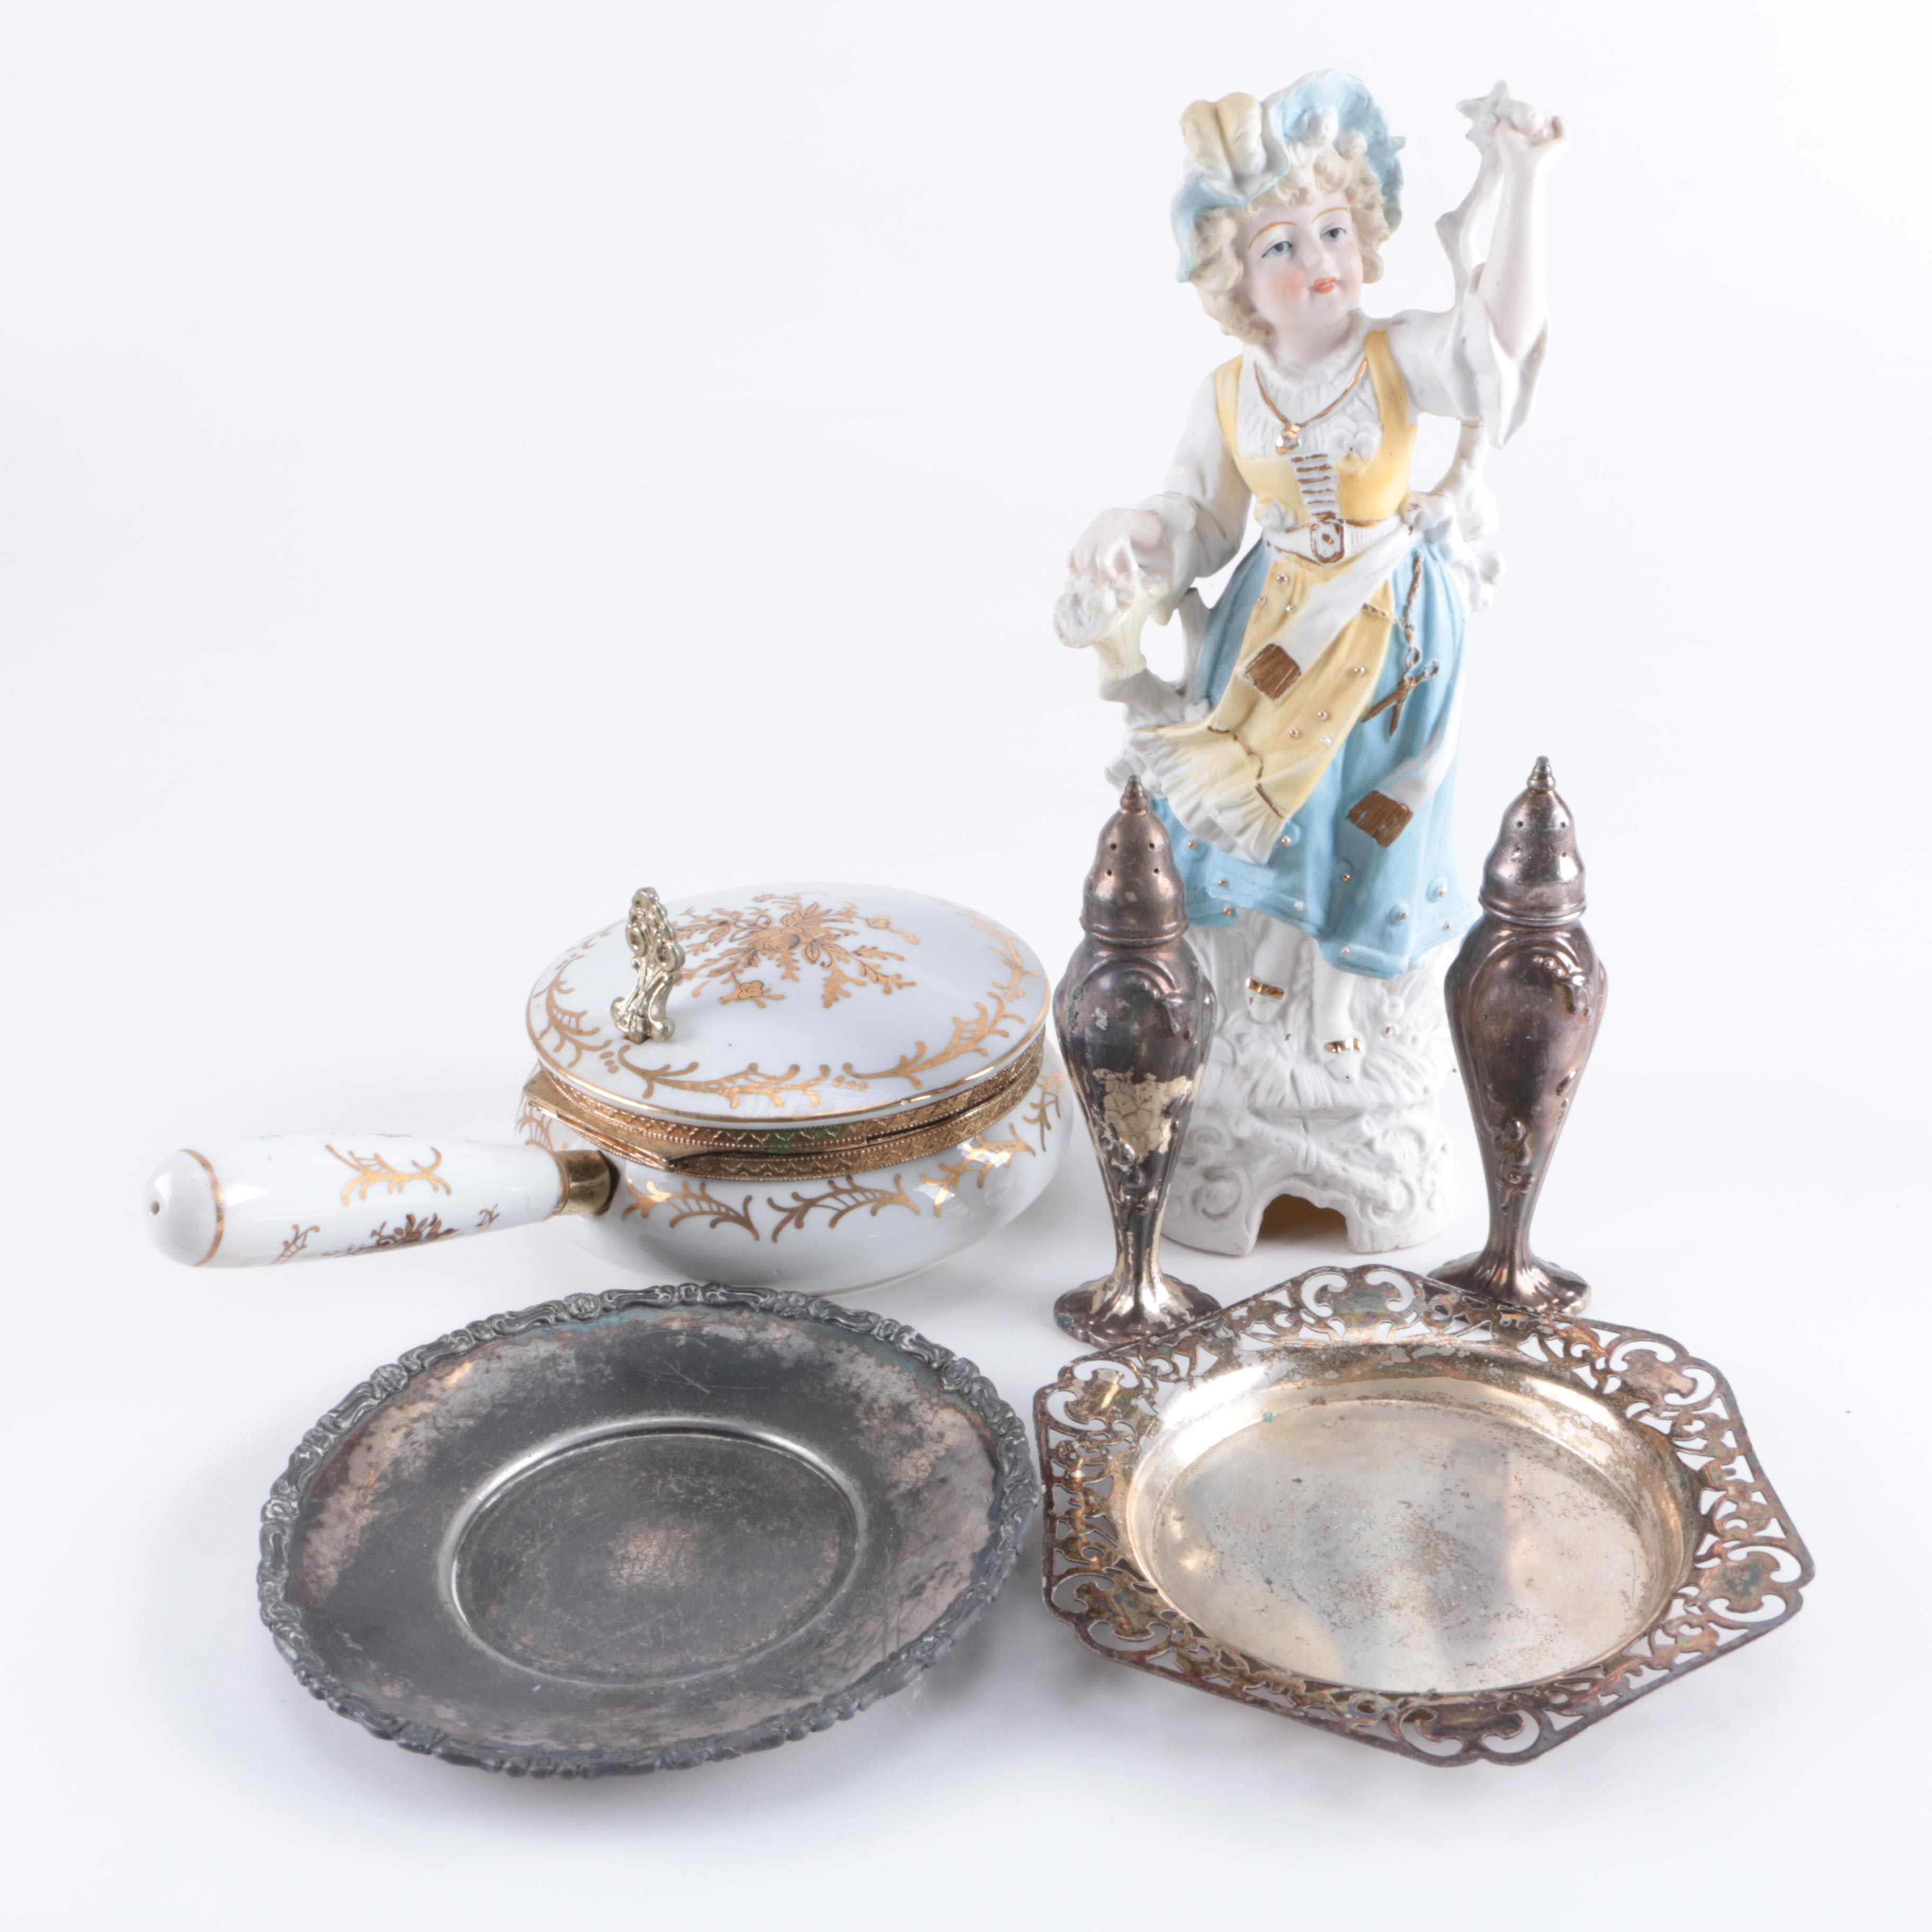 An Assormment of Porcelain and Silver Plate Decor